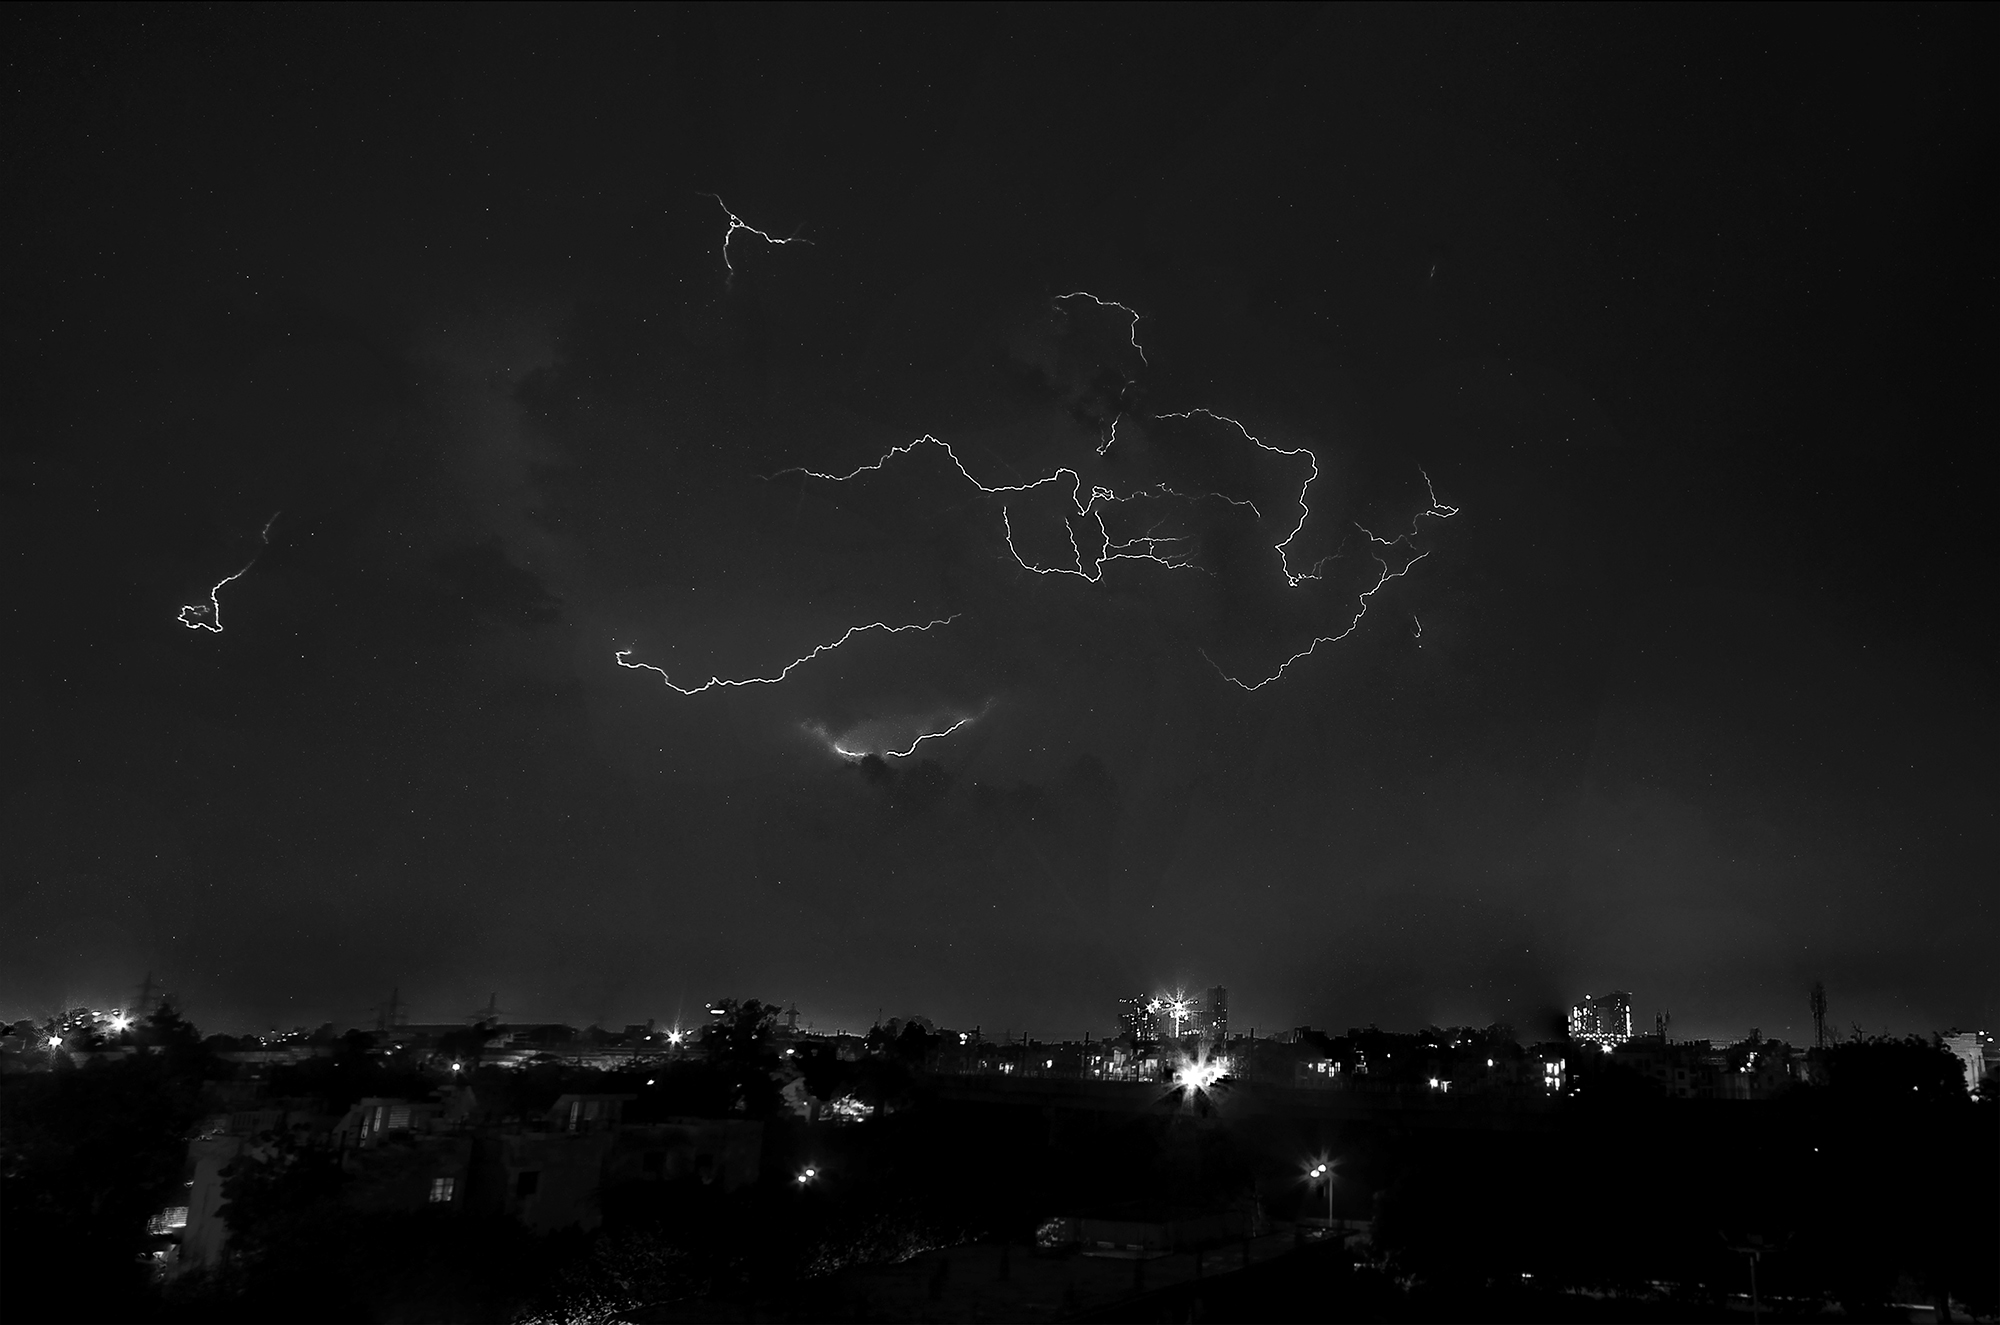 A vehement desire as it states depicts the outcome of the rage of the thunderous clouds resulting in lighting and a desire to uprise emotions and trauma. The photograph is a mere result of 9 shots stitched together on a rainy night in Delhi, India.